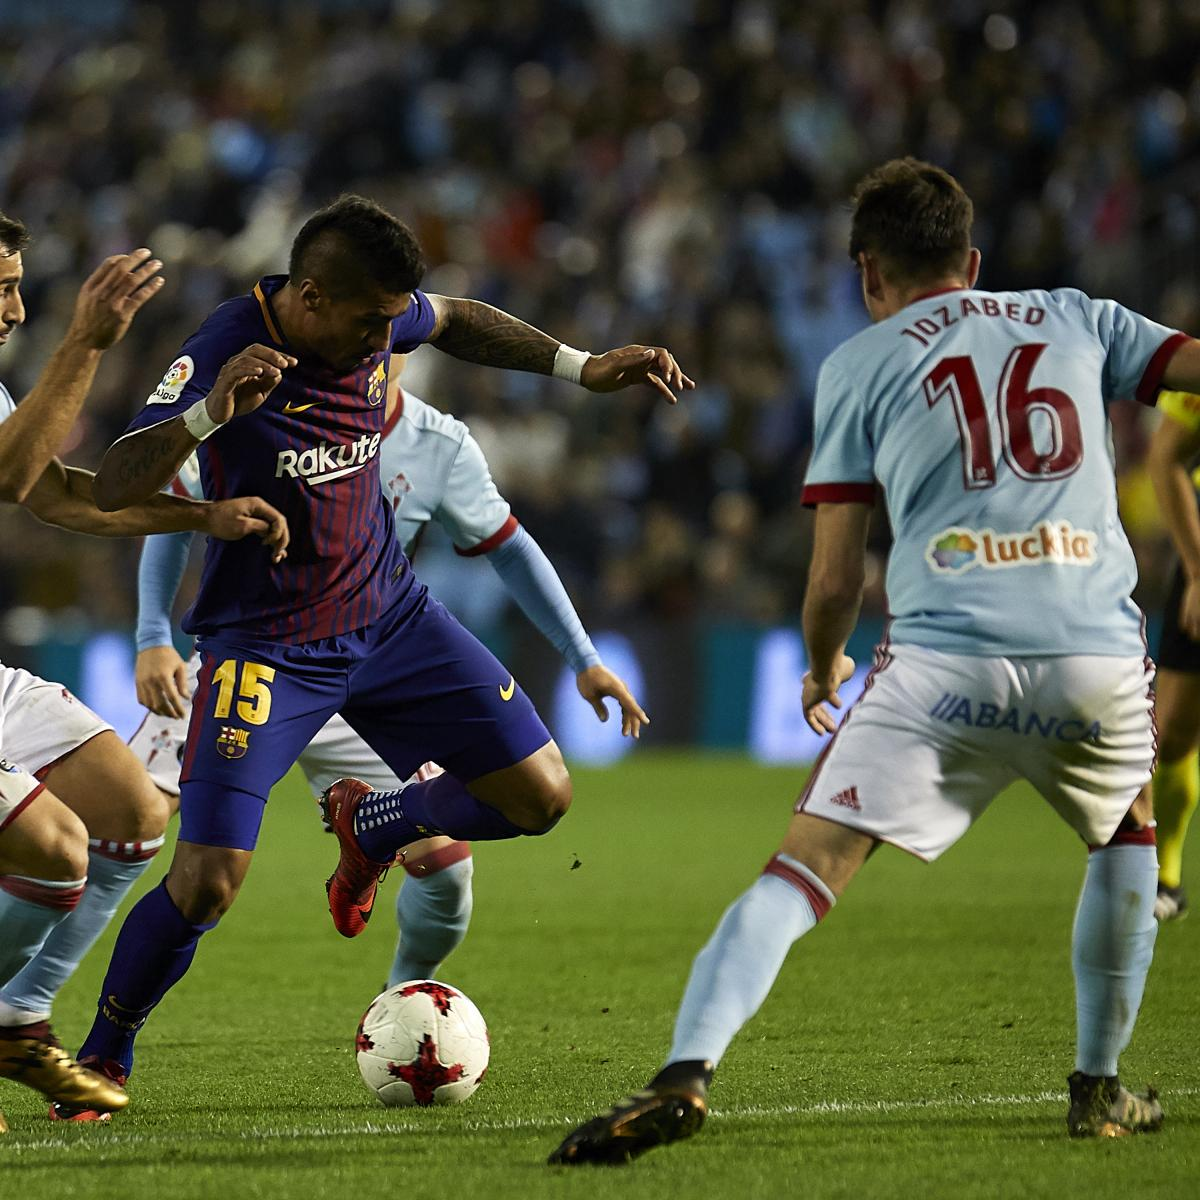 Celta Vigo Vs Barcelona Direct: Barcelona Vs. Celta Vigo: 2018 Spanish Copa Del Rey Leg 2